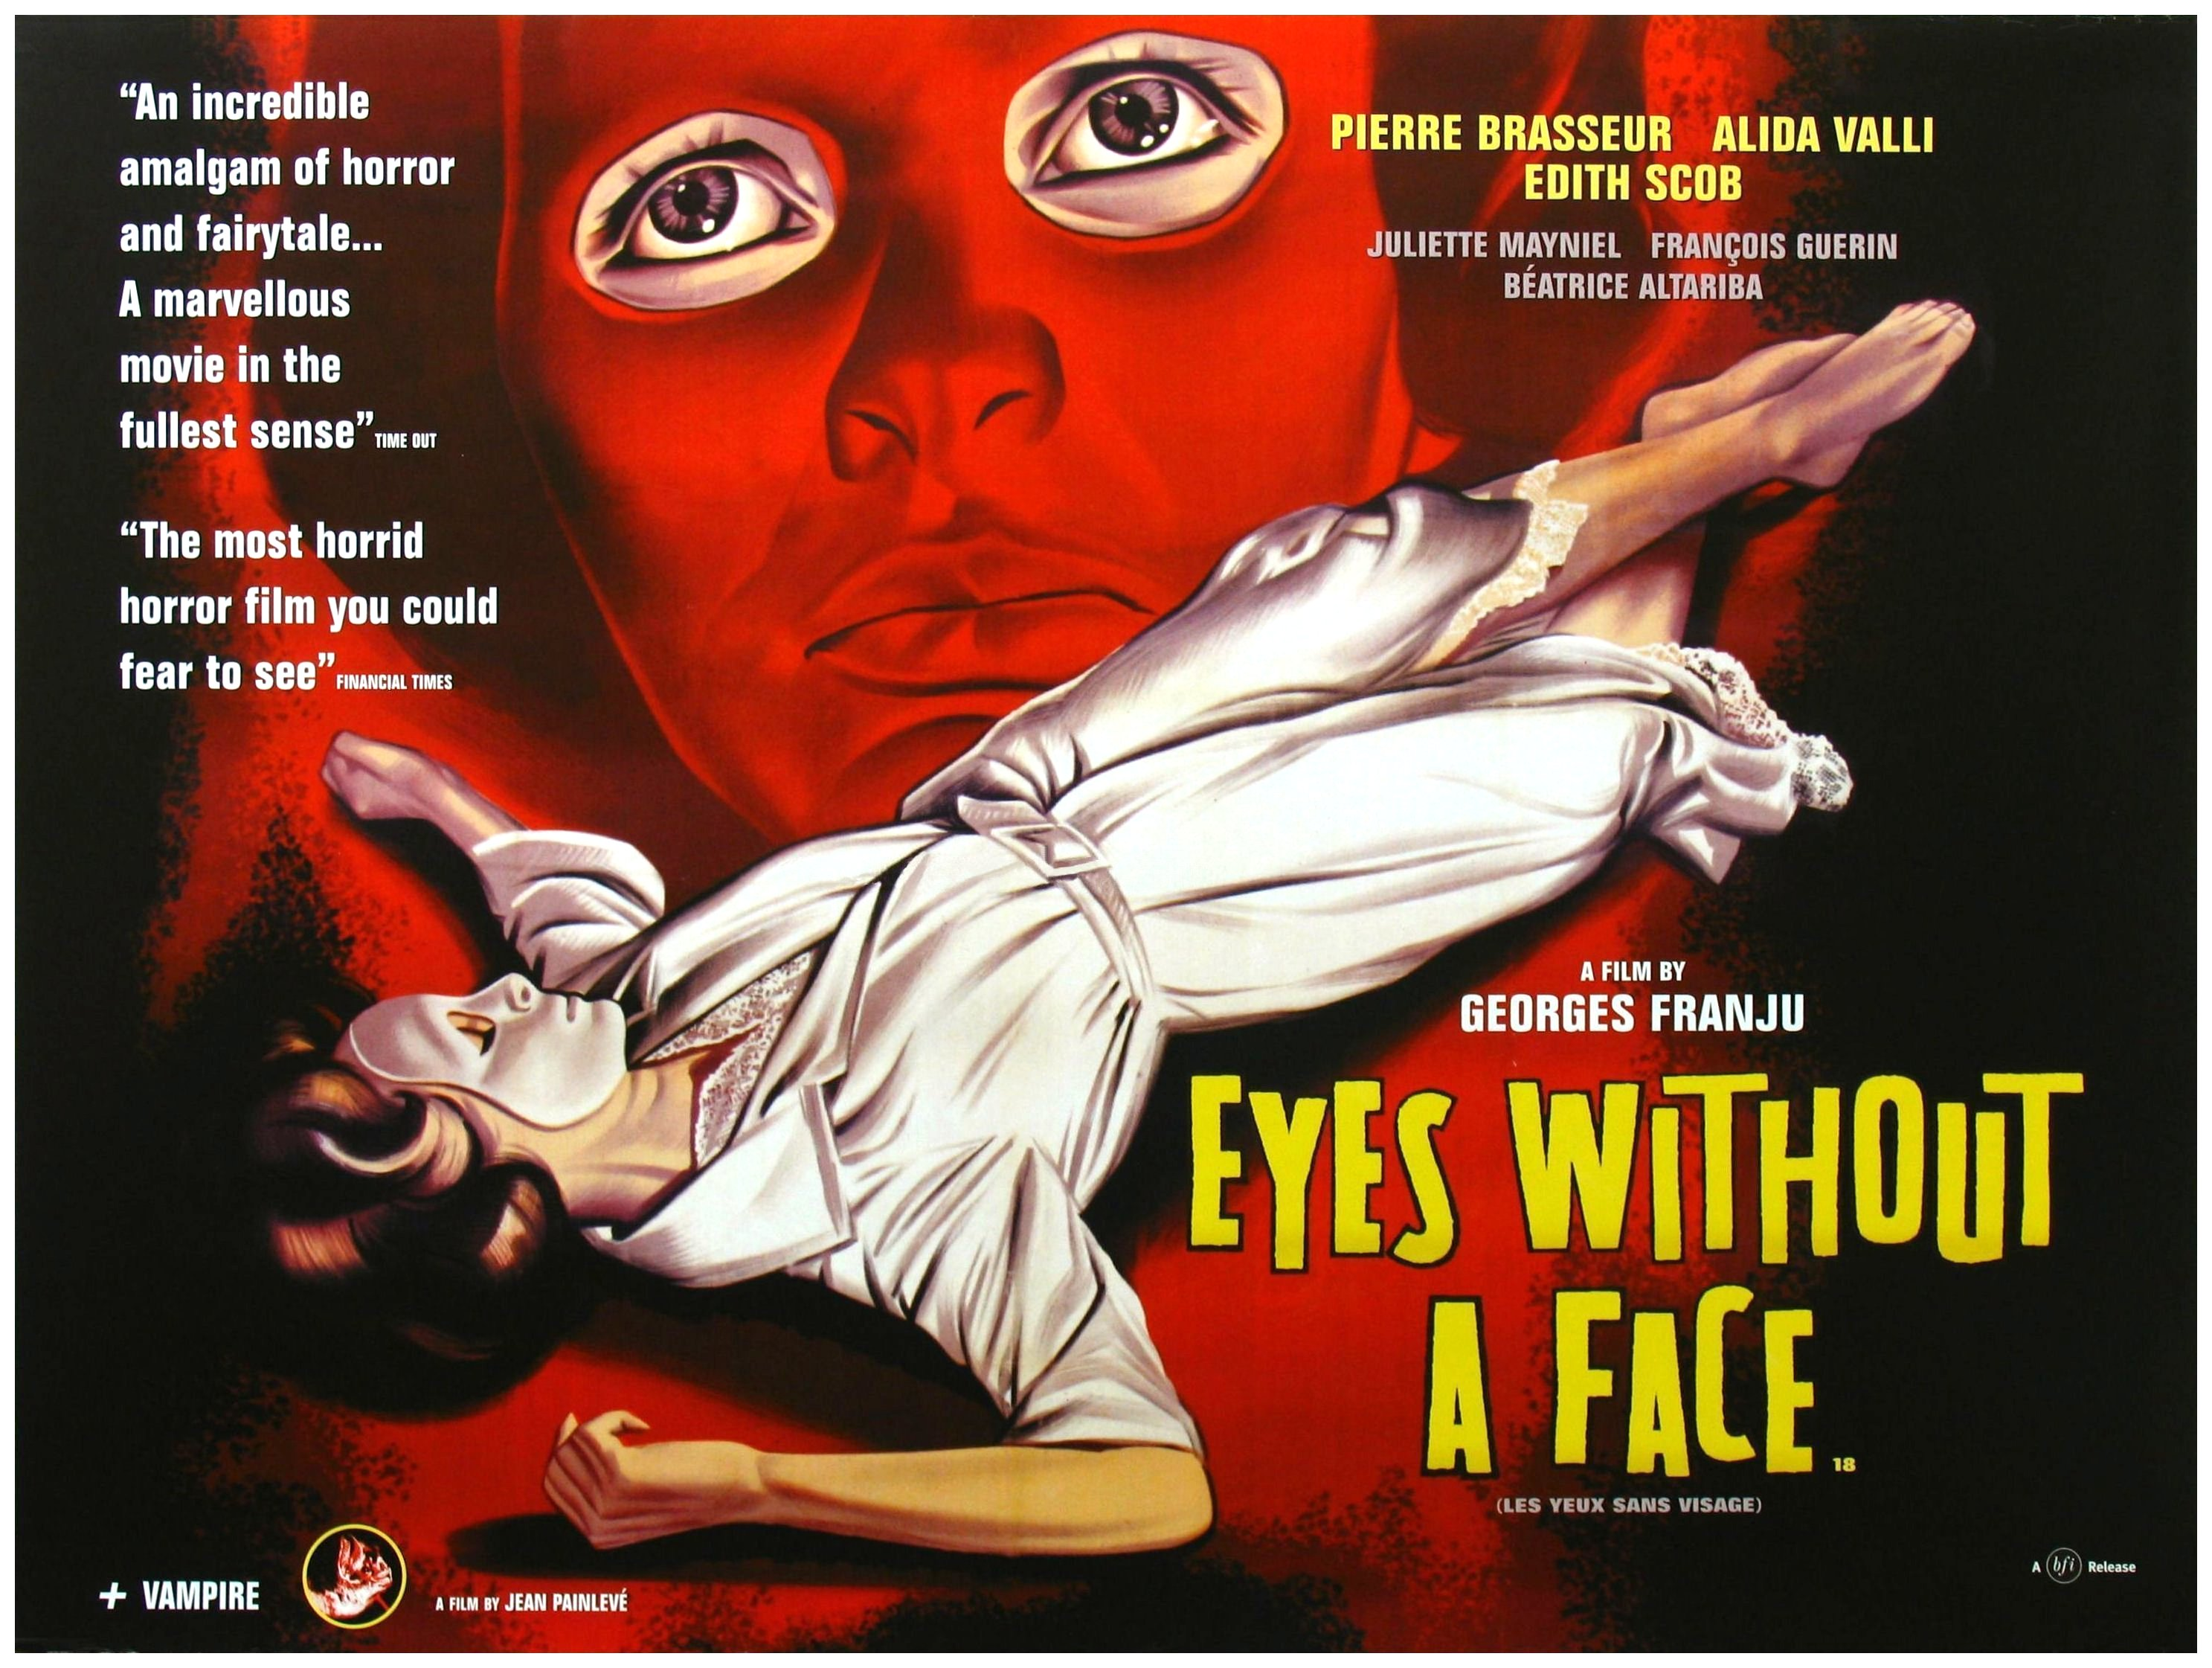 Eyes without a face.